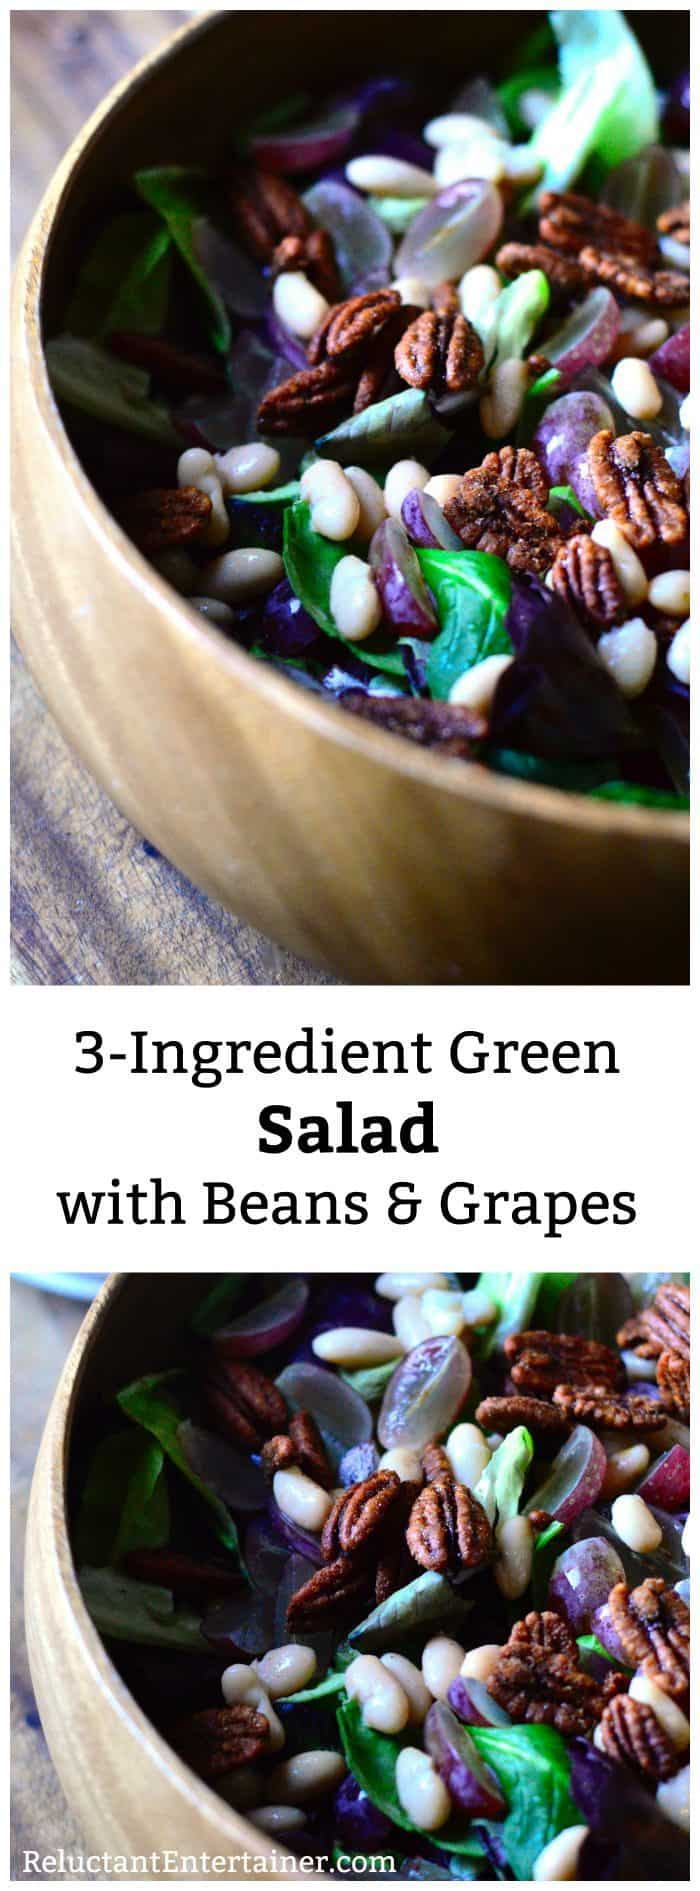 3-Ingredient Green Salad Beans Grapes